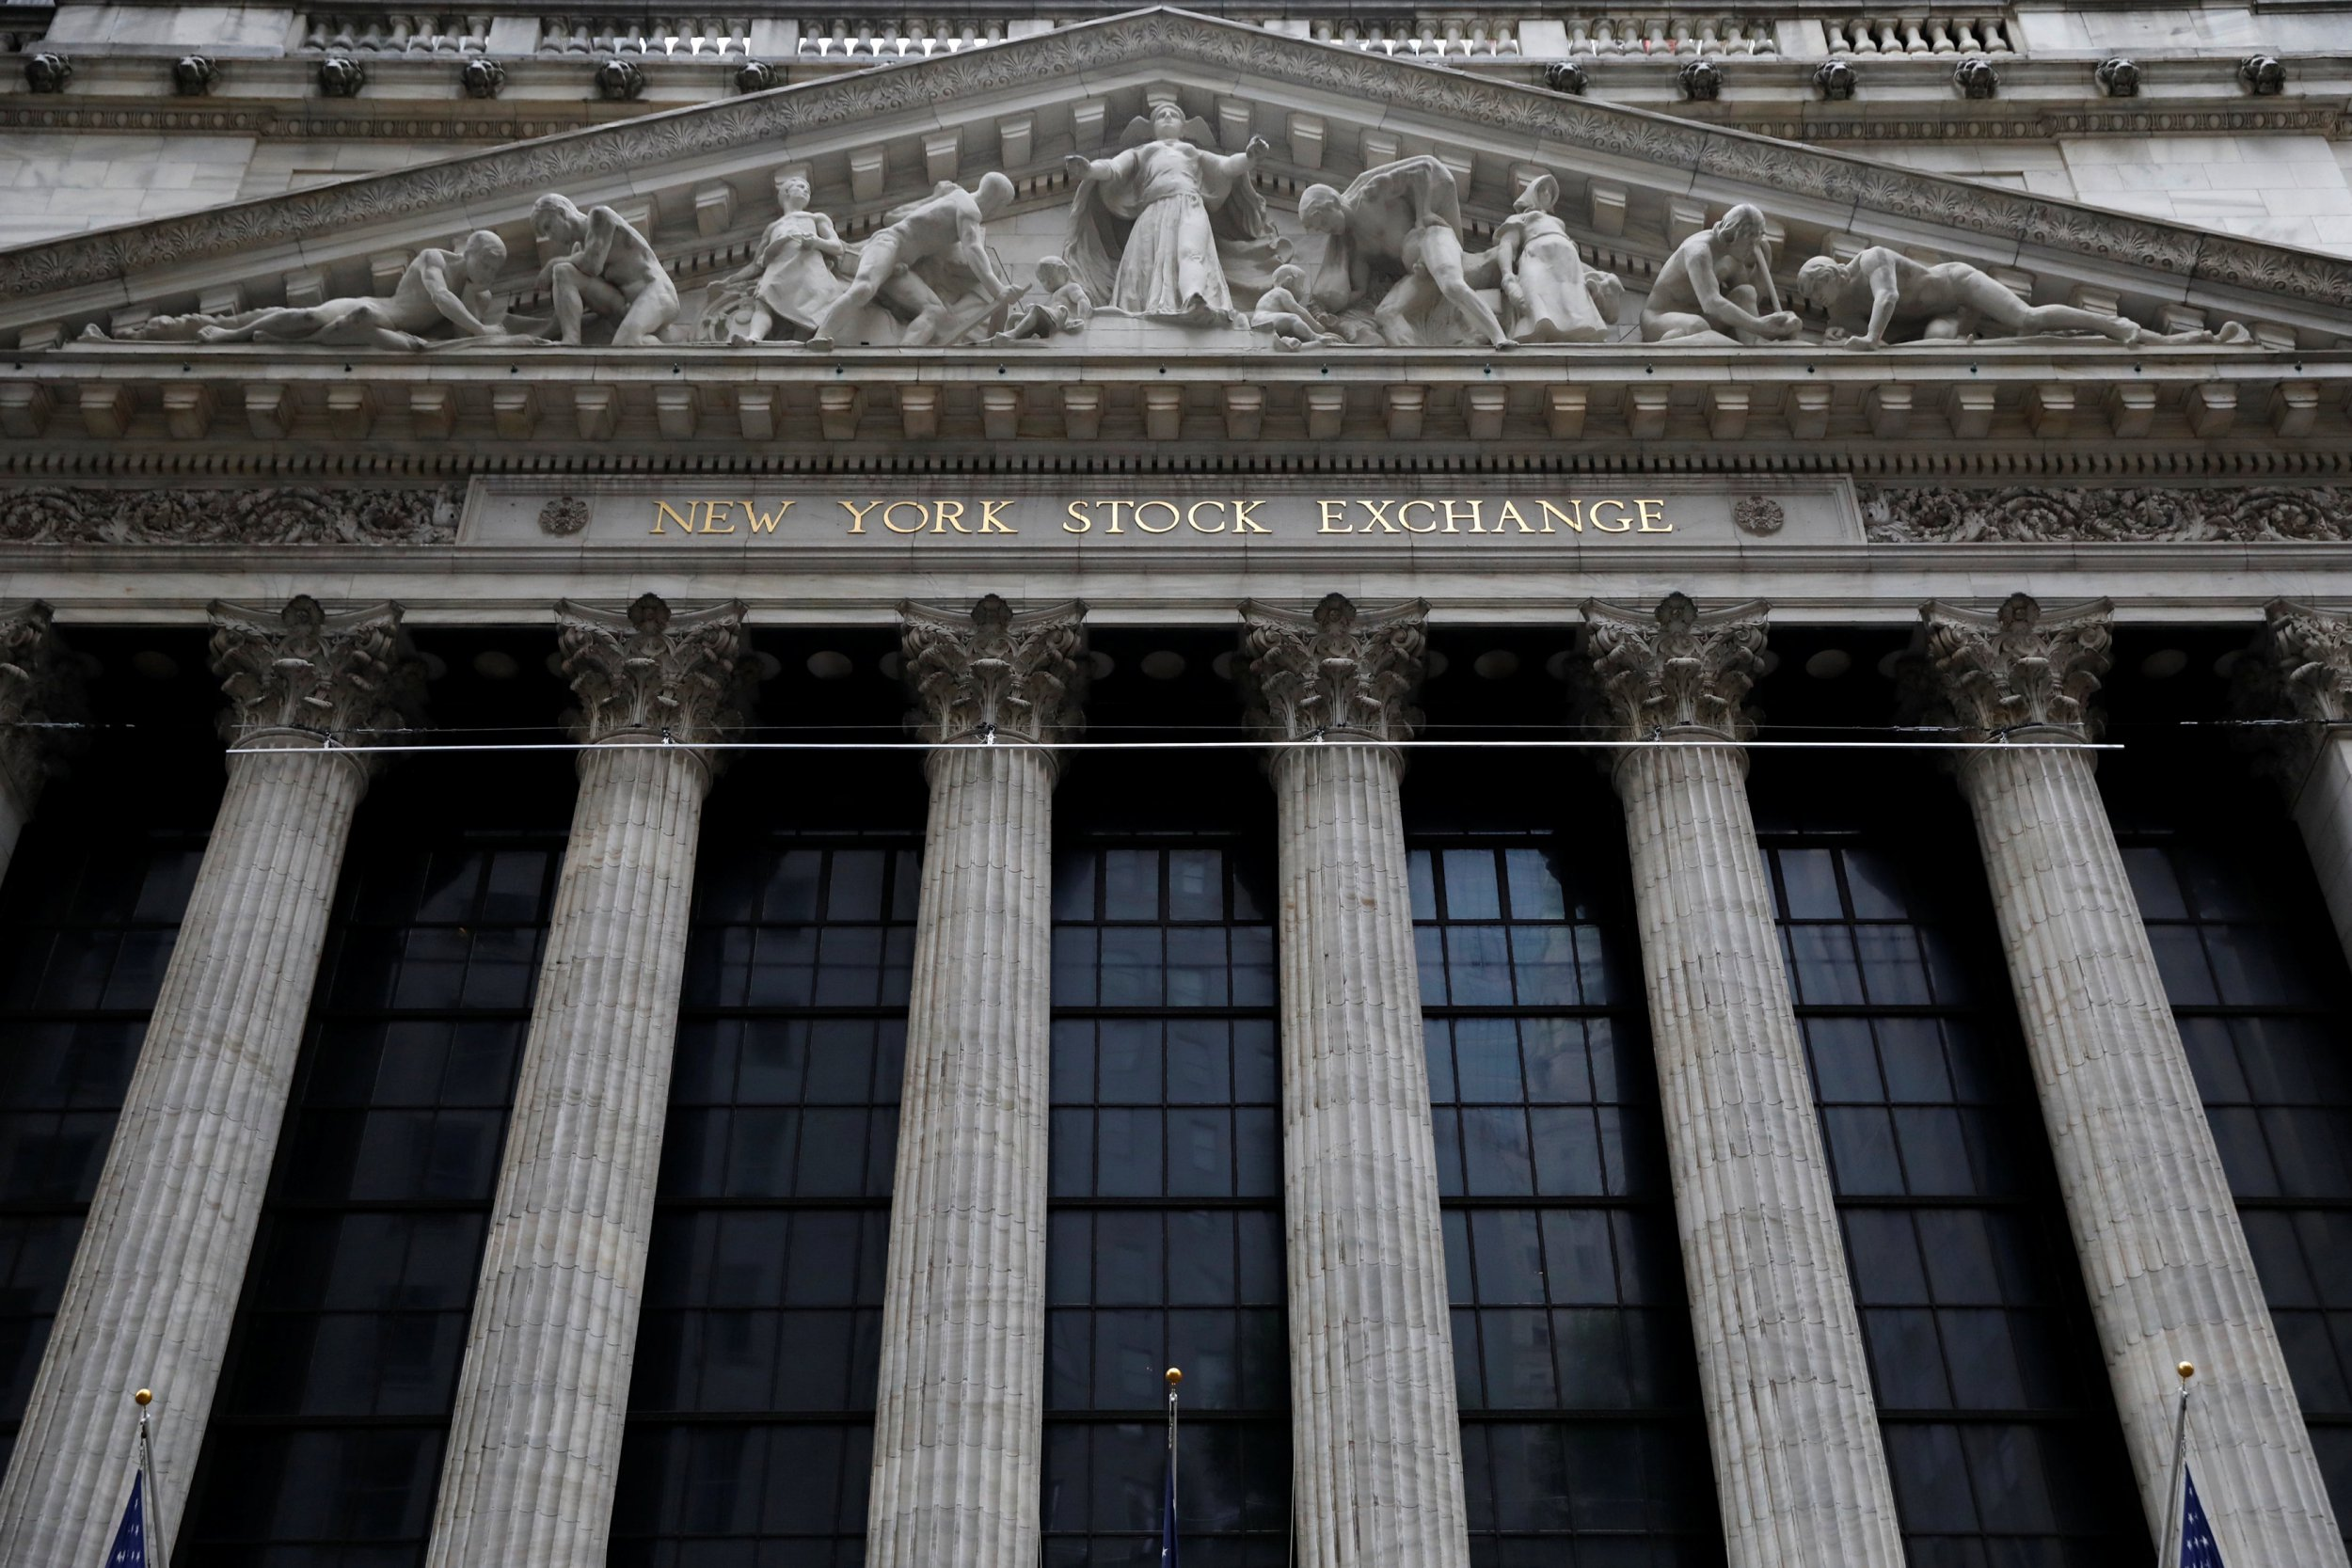 The facade of the New York Stock Exchange (NYSE) is seen in New York, U.S., August 22, 2018. REUTERS/Brendan McDermid